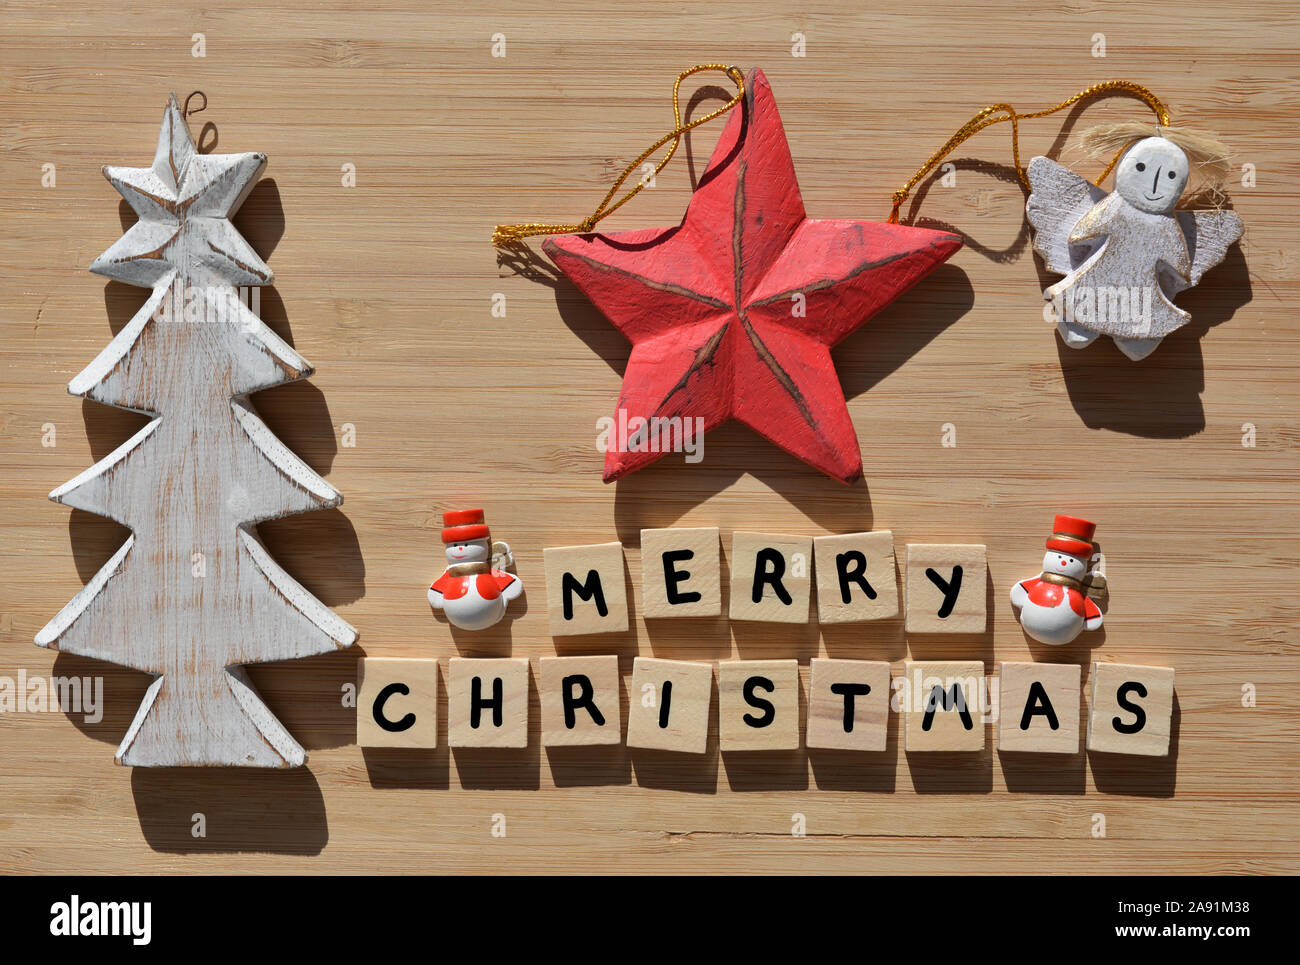 Merry Christmas In 3d Wooden Alphabet Letters With A Wooden Christmas Tree Reindeer And Santa Snowmen Decorations On A Bamboo Wood Background With Co Stock Photo Alamy